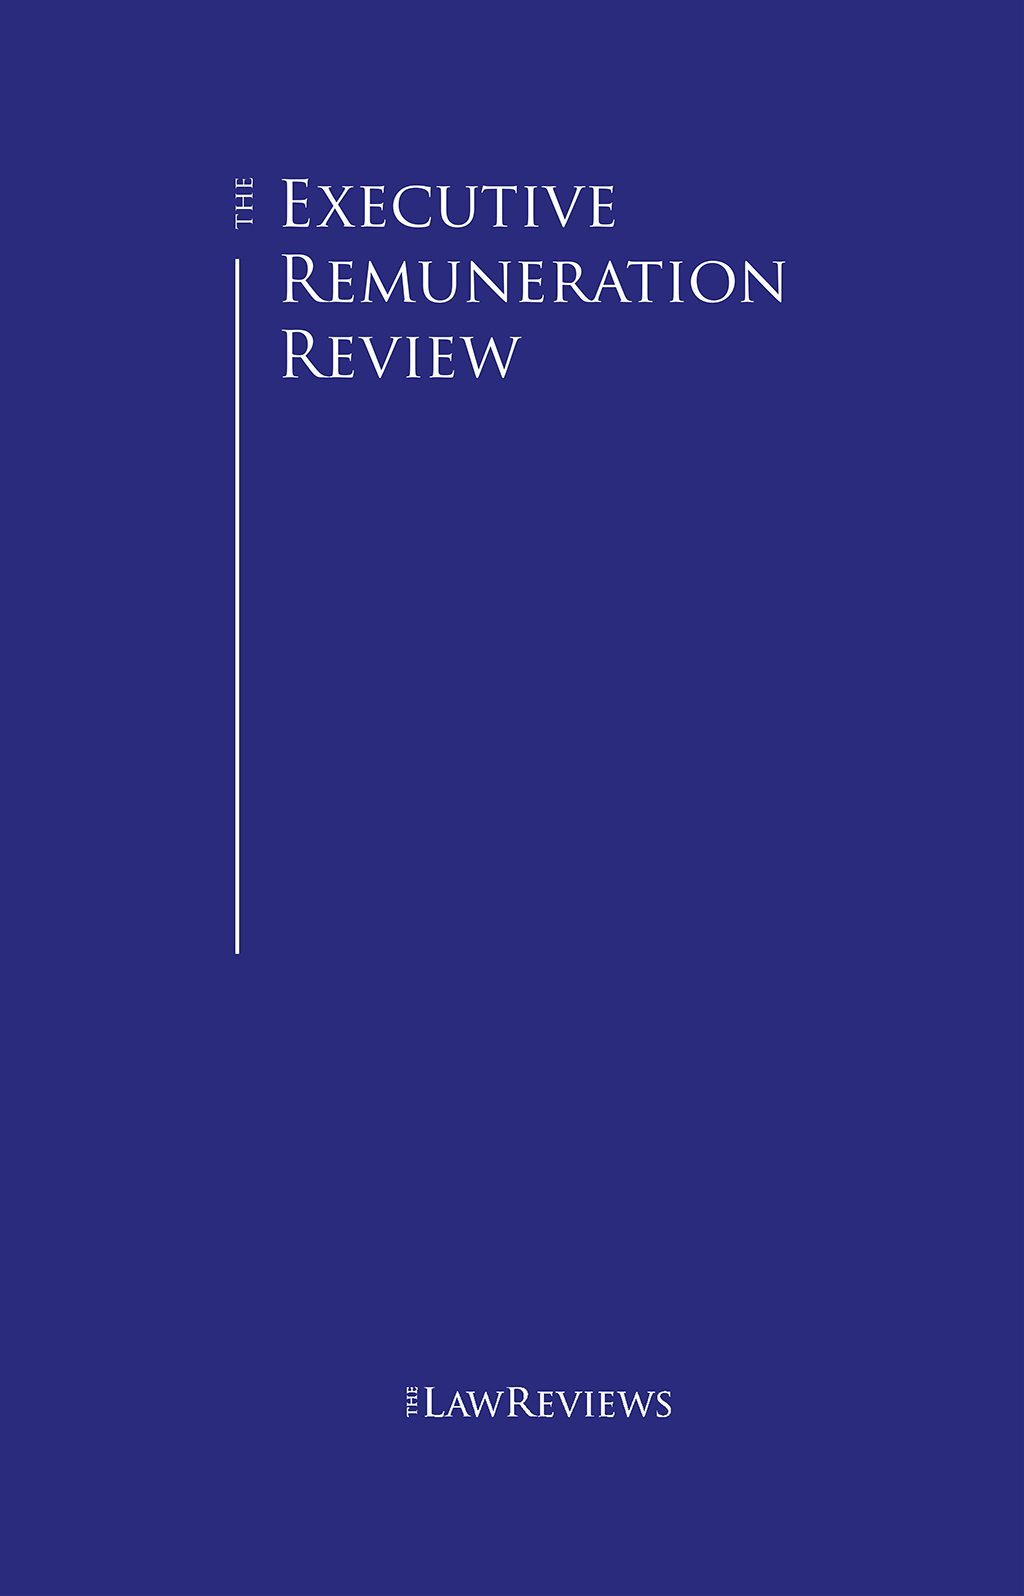 The Executive Remuneration Review